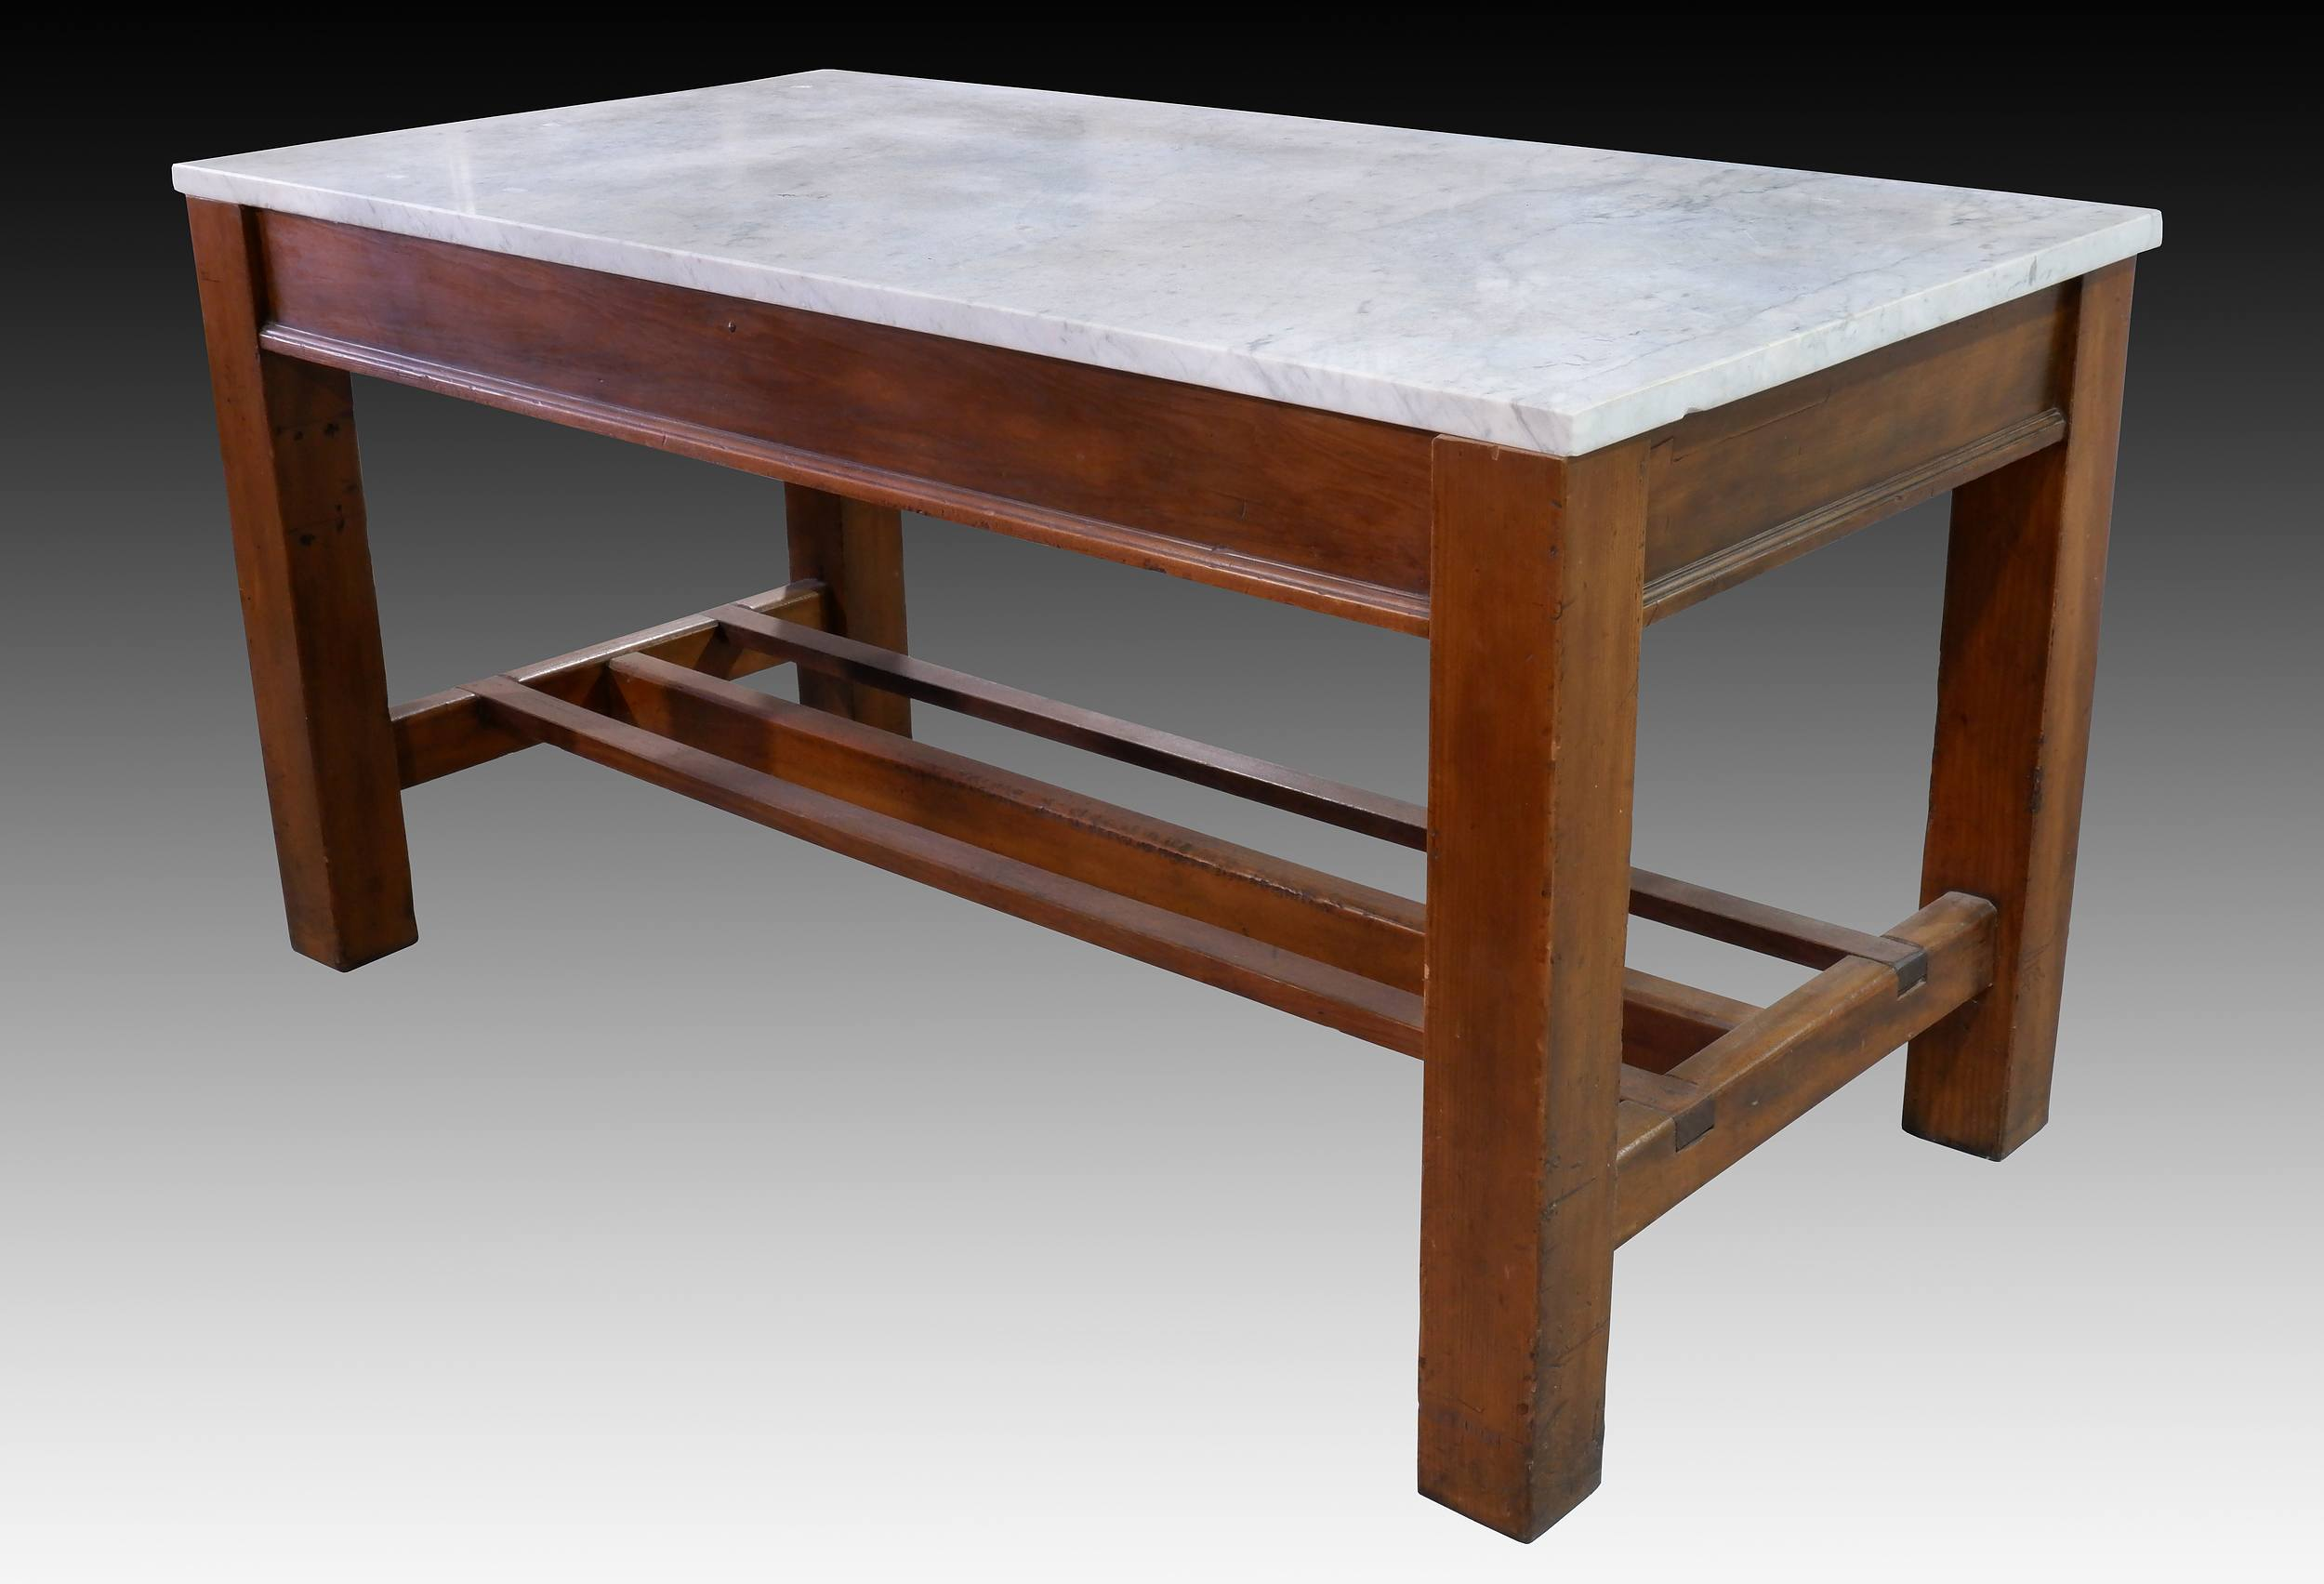 'Antique Pine Kitchen Table with Marble Top and Slatted Shelf Below'